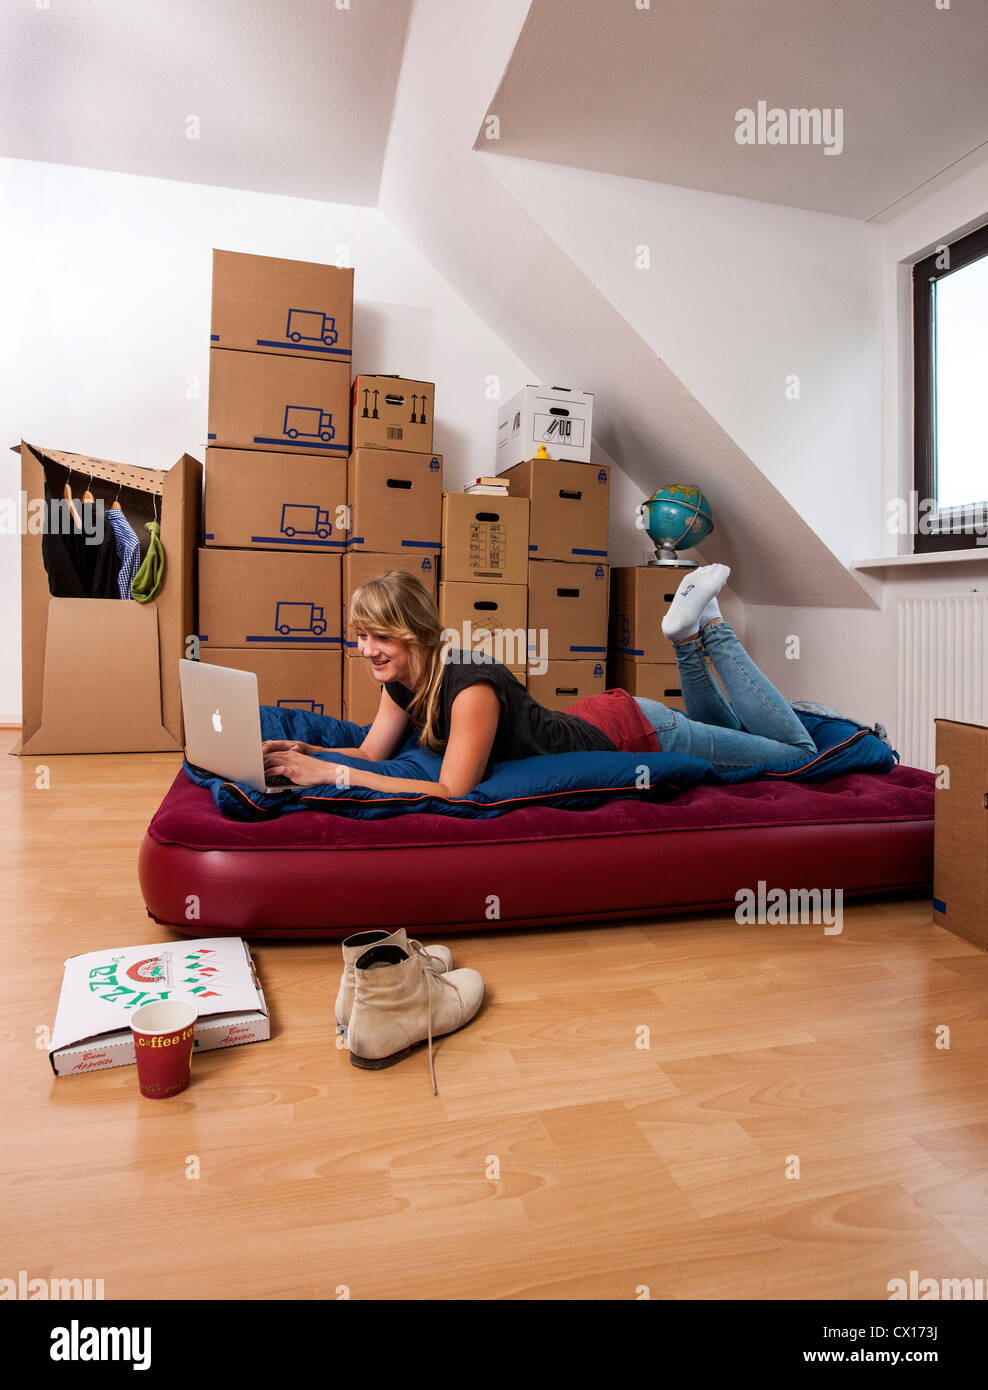 furniture for new apartment. stock photo young woman in her new apartment still no furniture living out of moving boxes works with laptop computer for